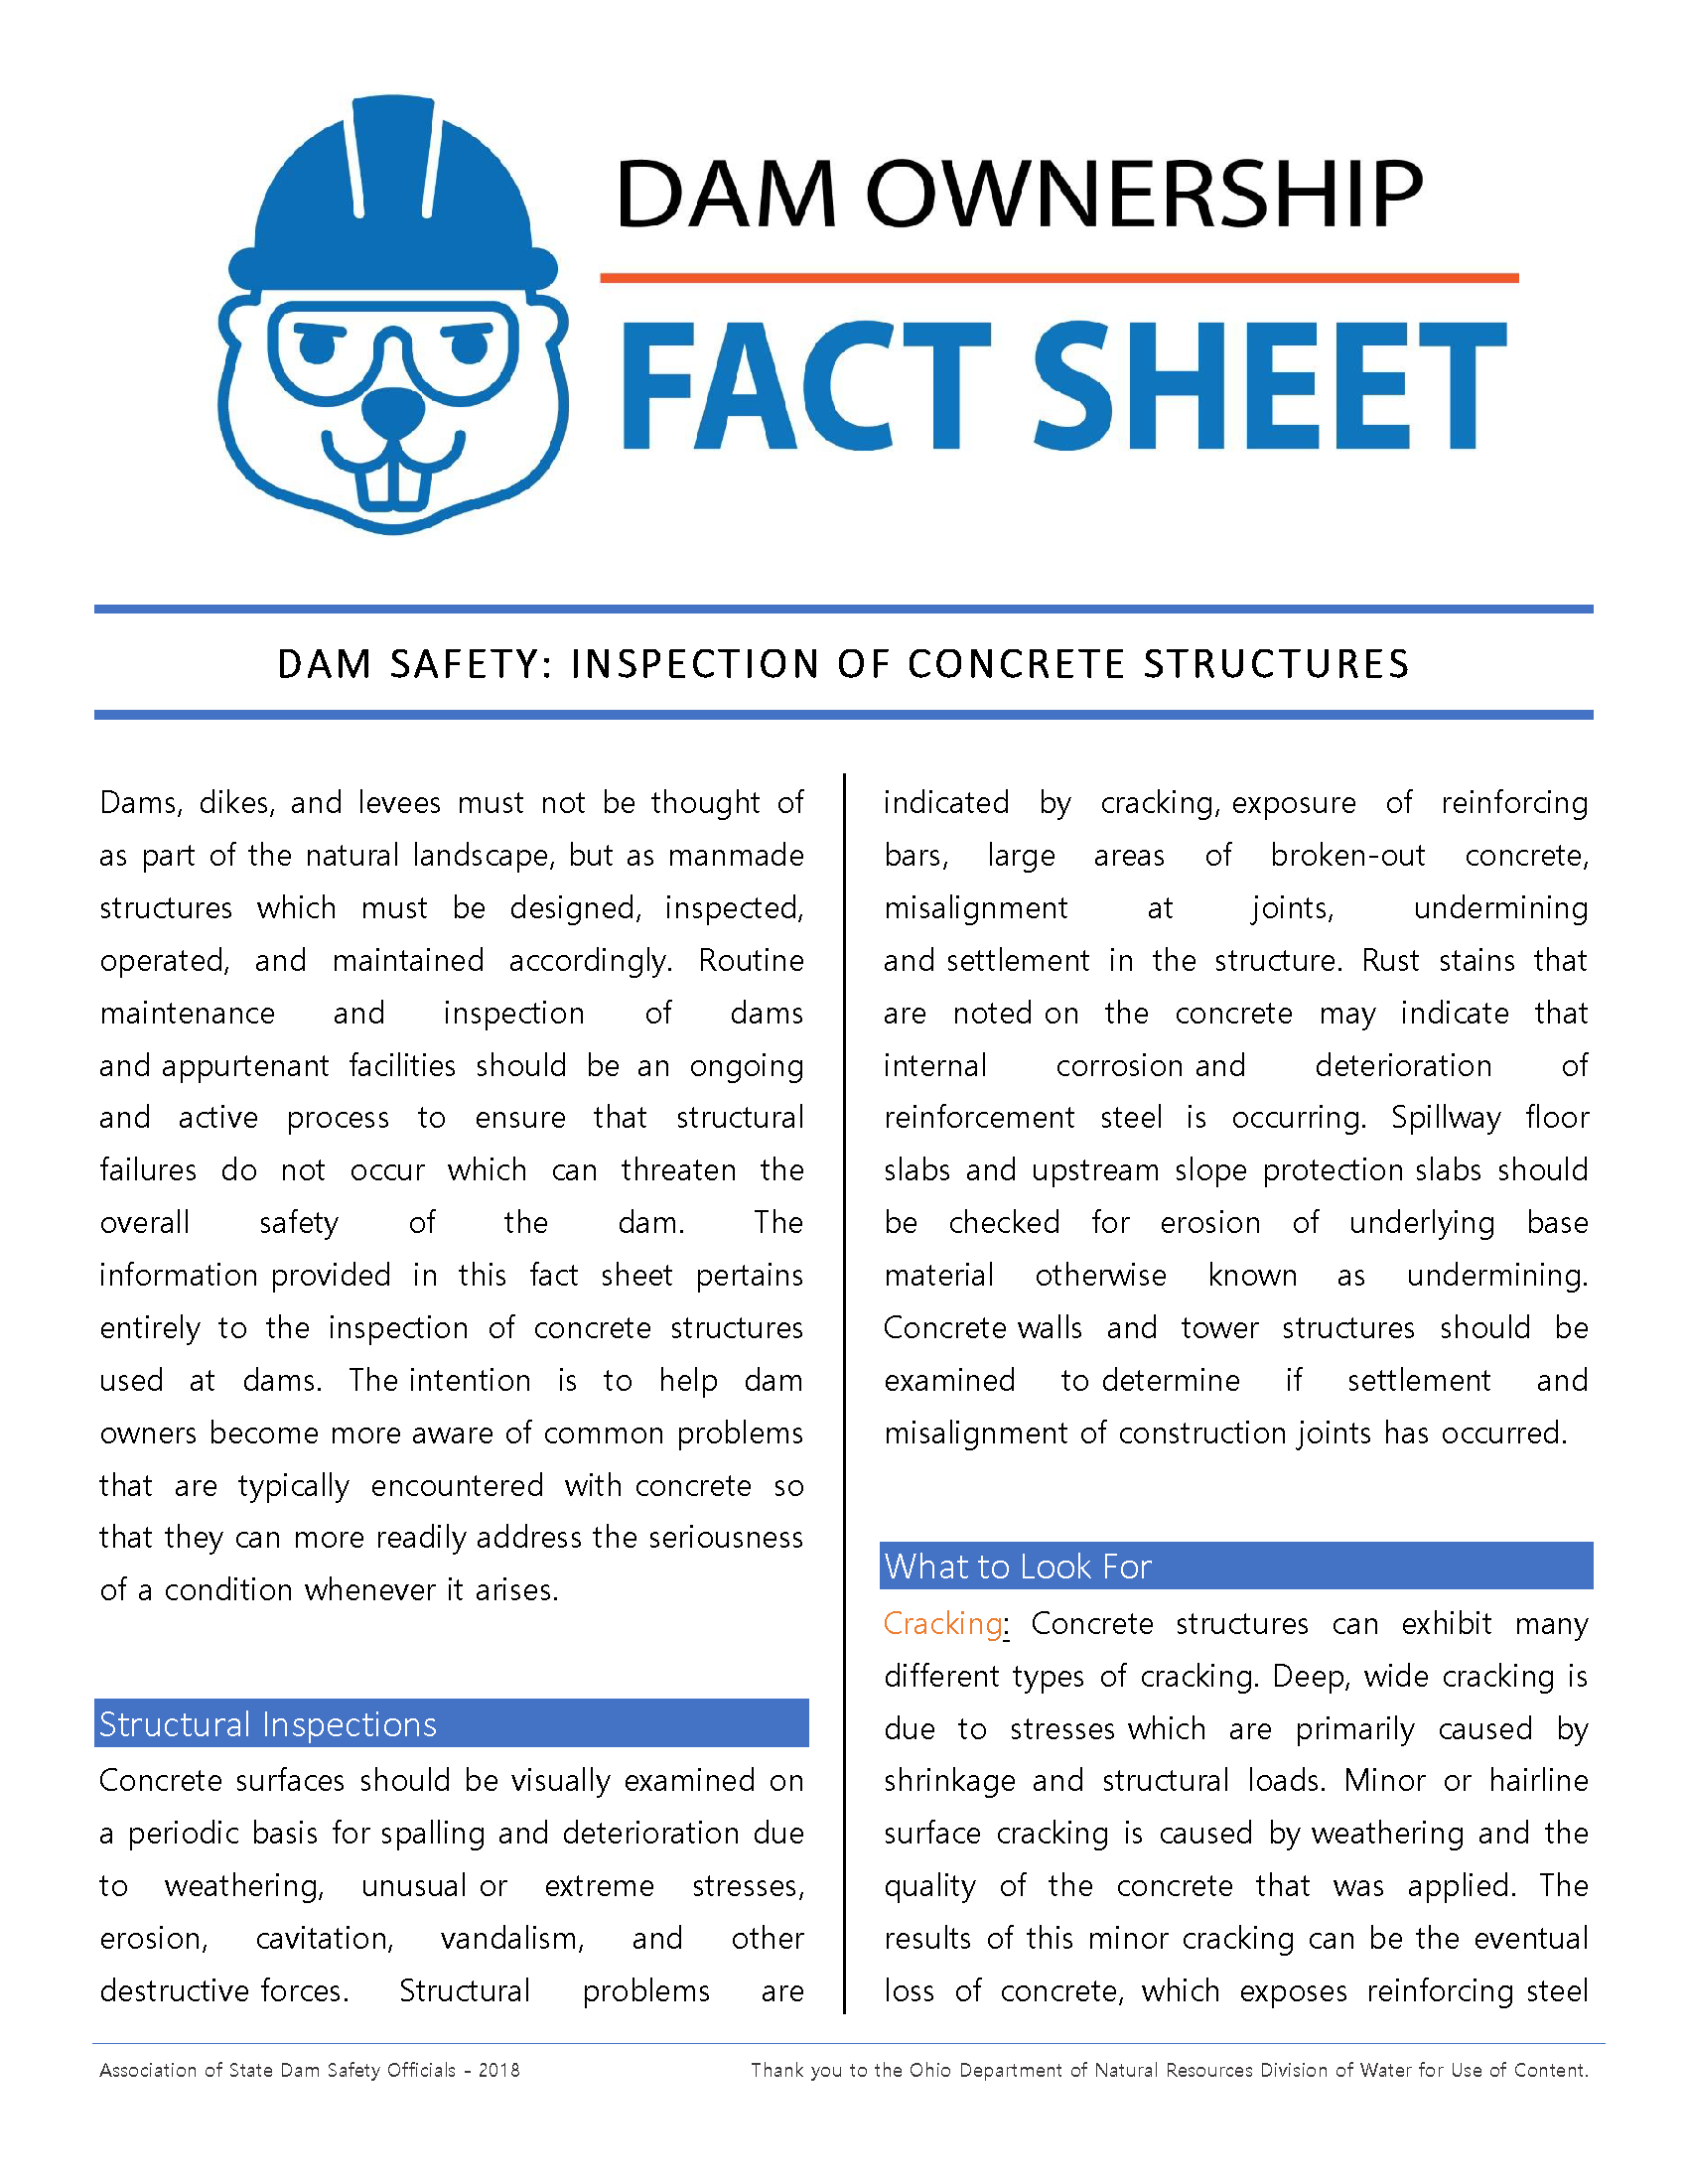 Inspection of Concrete Structures Fact Sheet 2018_Page_1.png